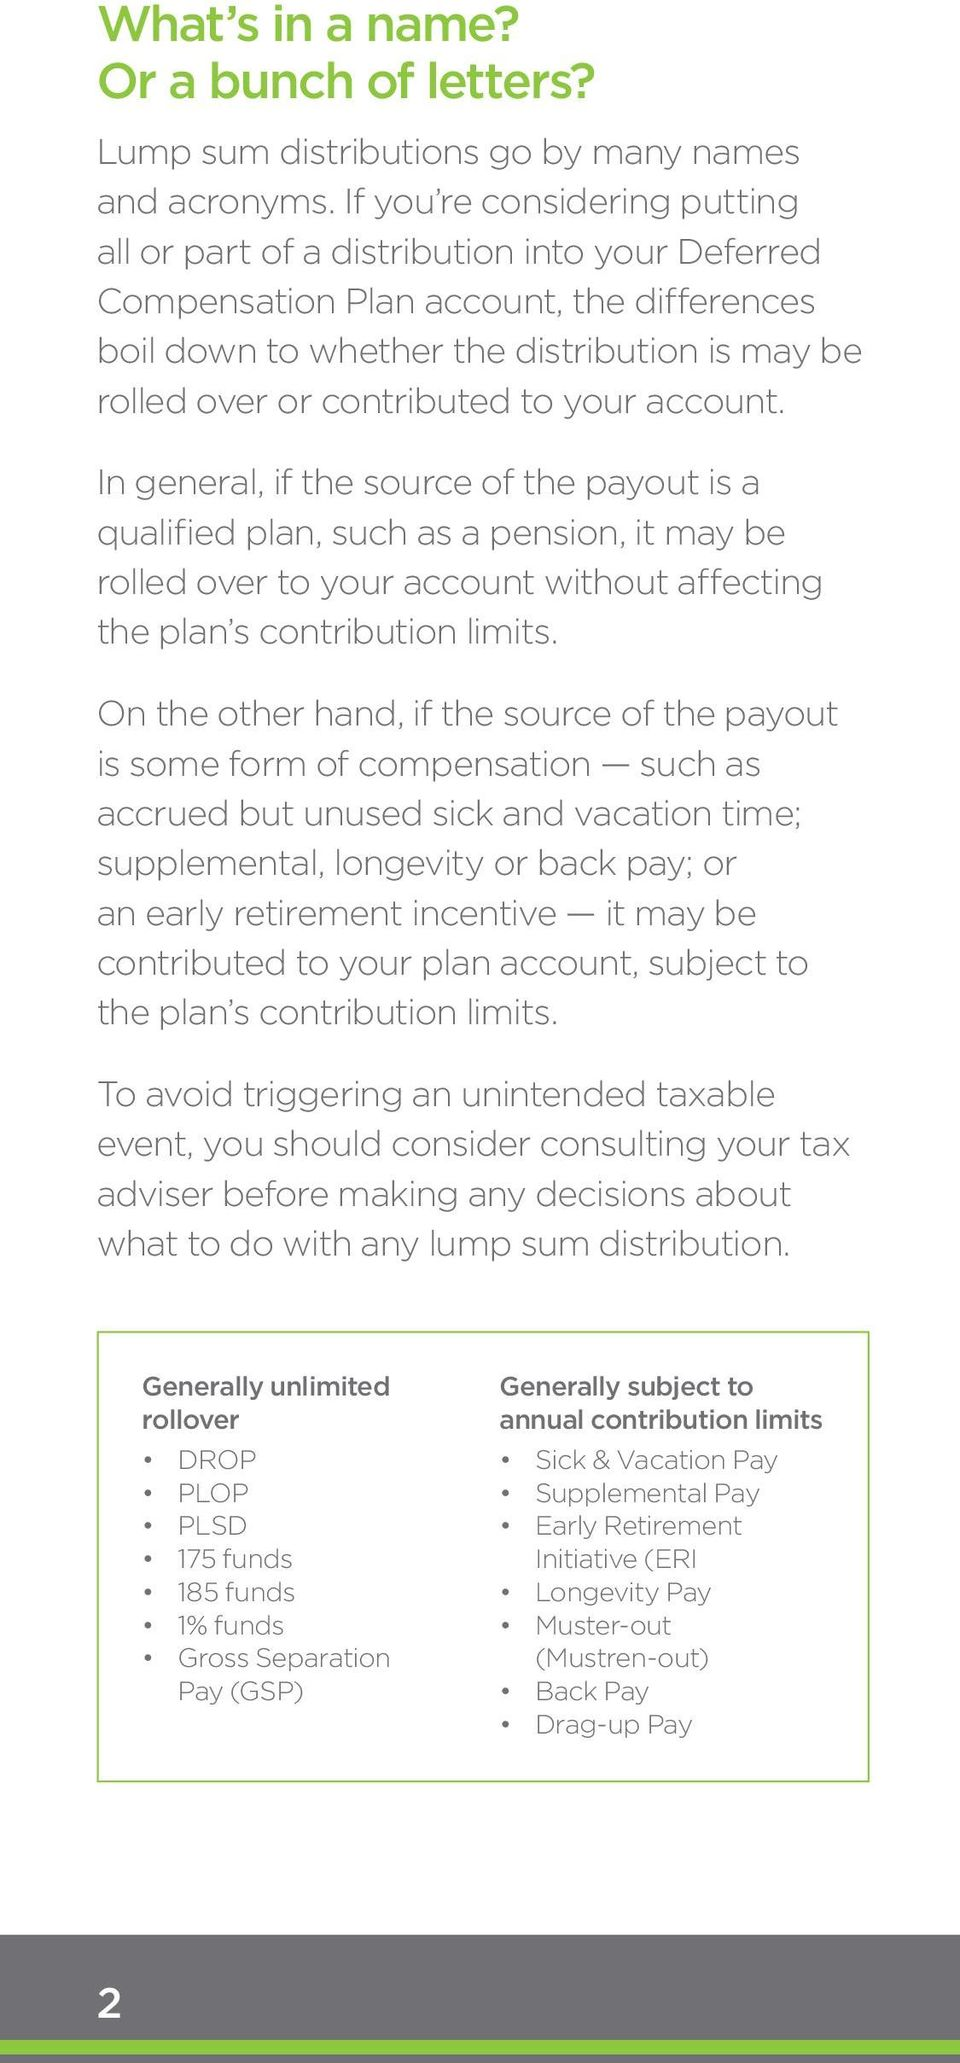 nslsc how to pay a lump sum